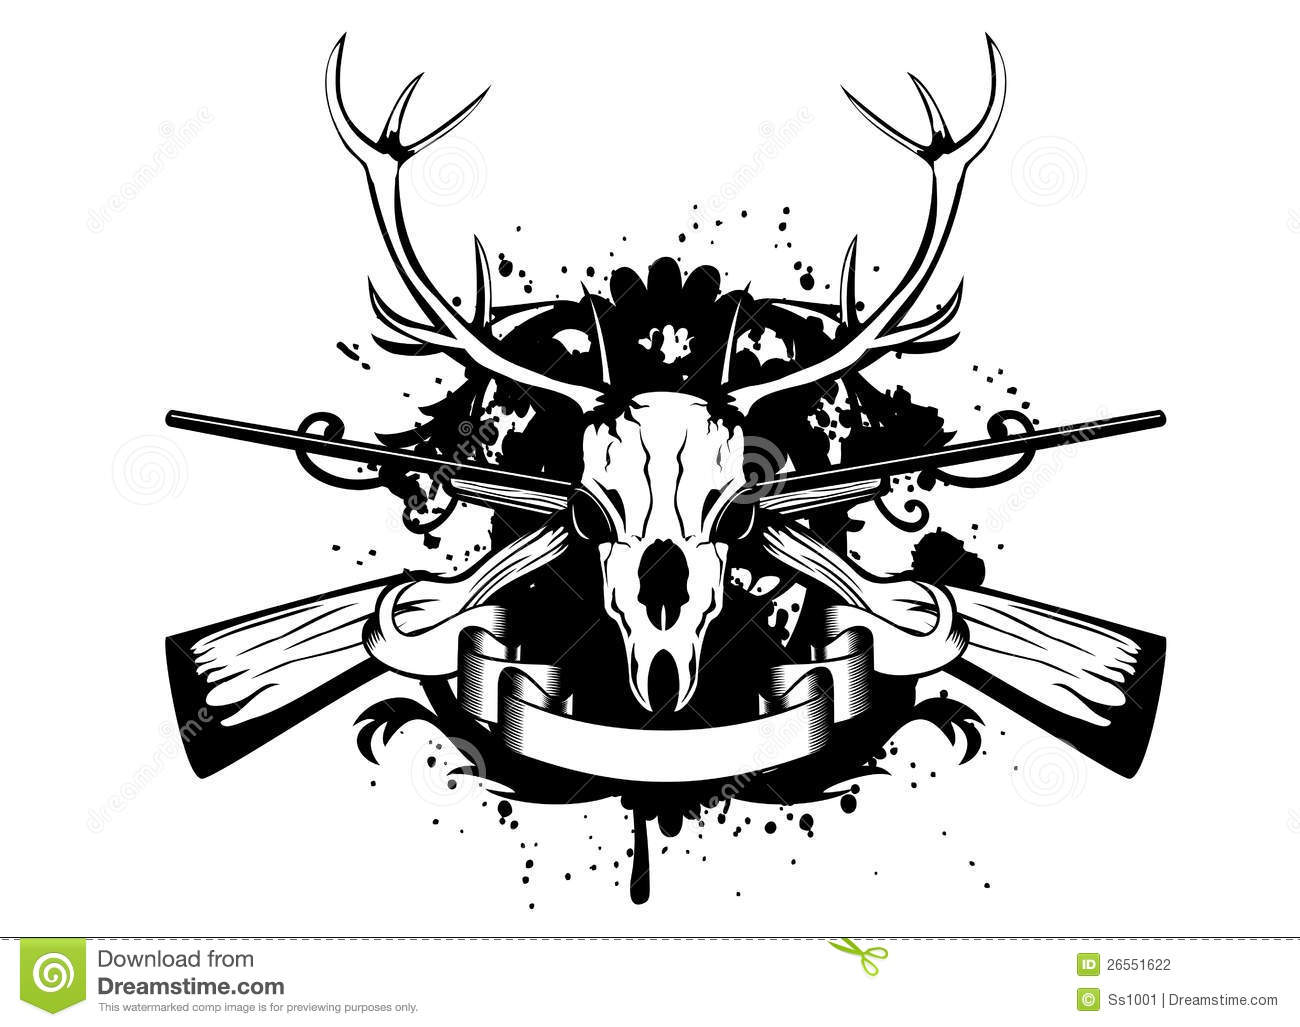 Skulls And Guns Tattoos: Skull Artiodactyl And Crossed Guns Stock Vector